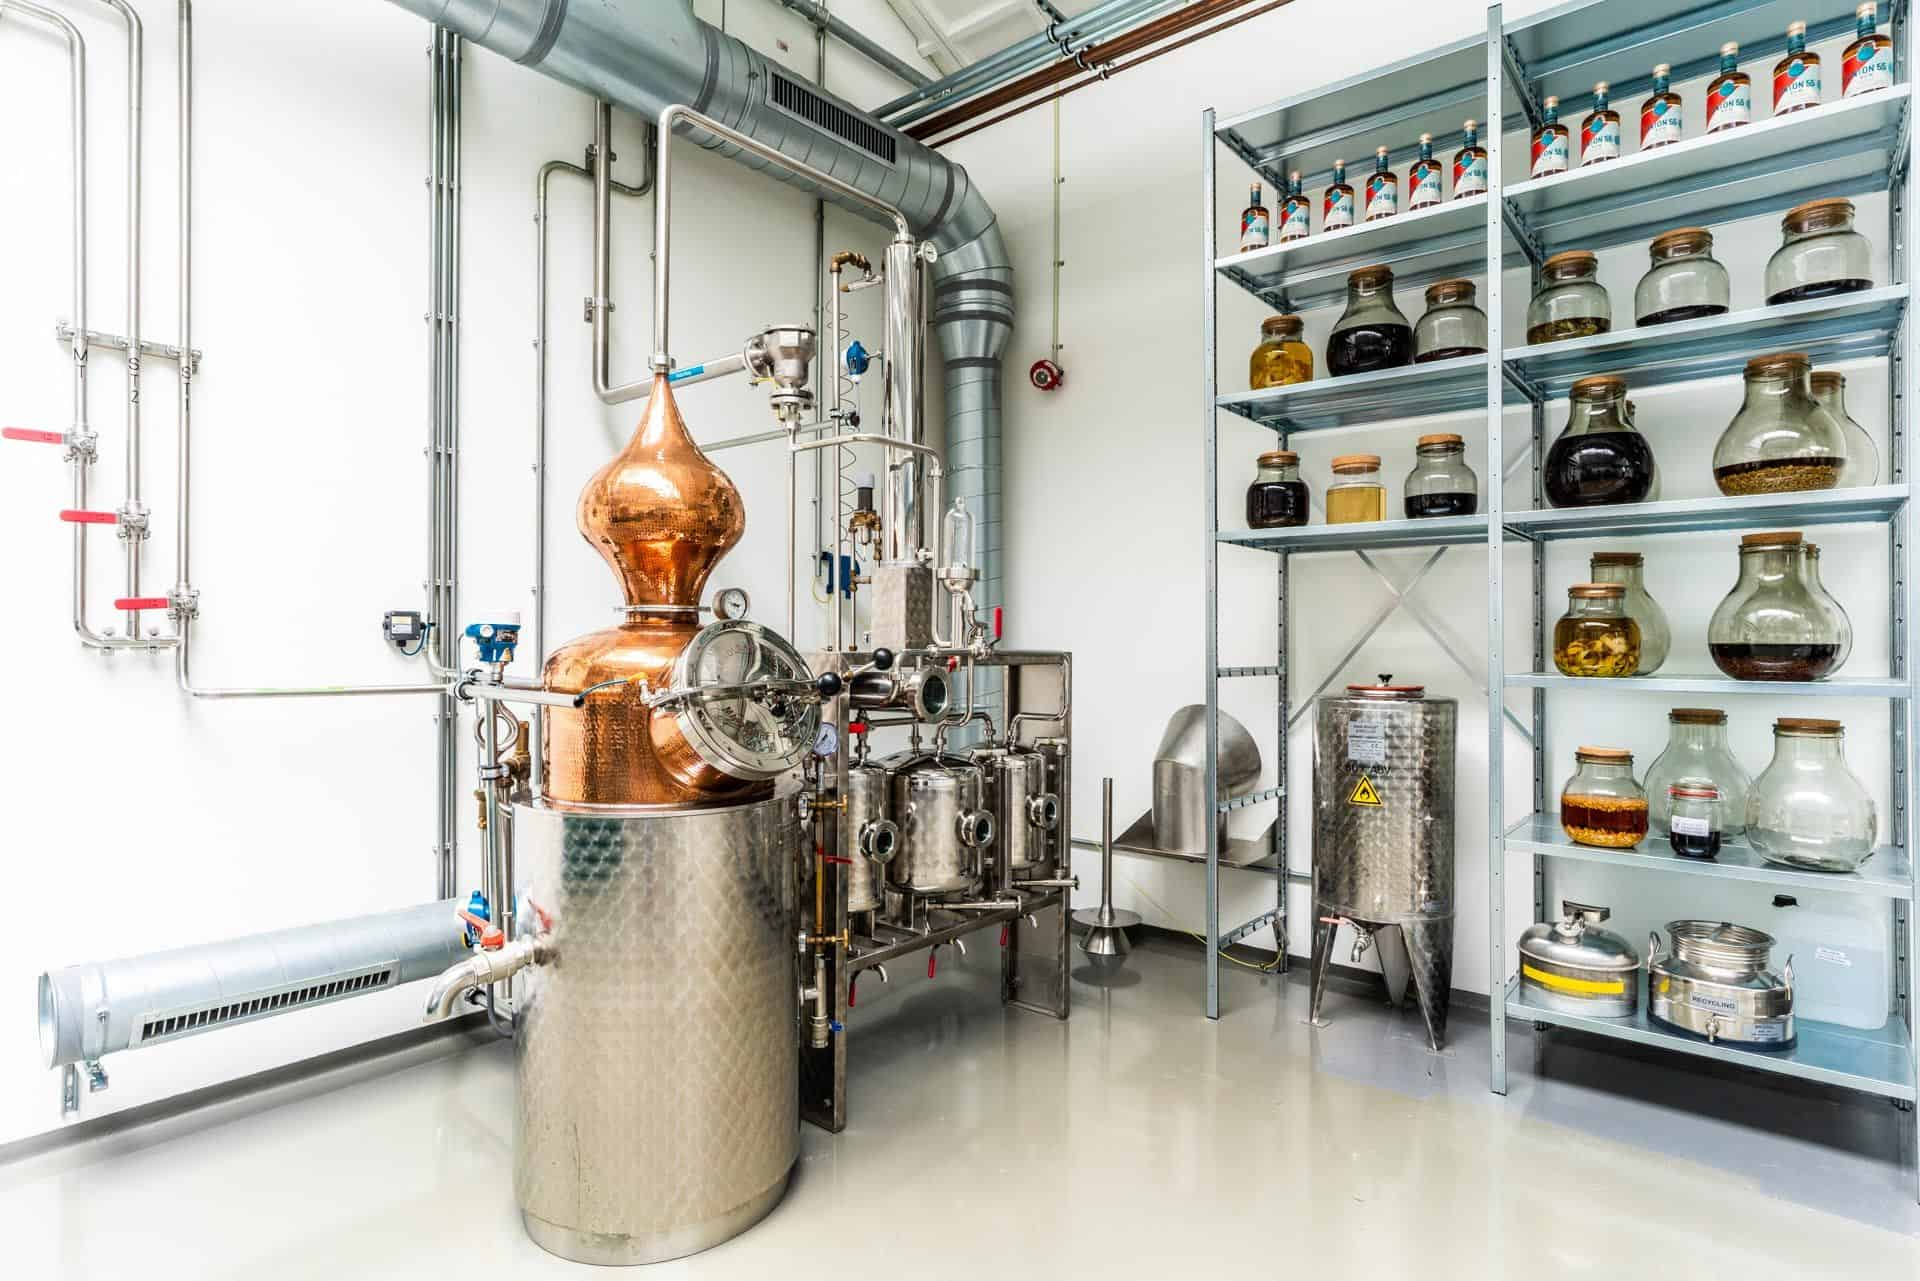 Inside the spirited union distillery with distilling kettle and botanical infusions